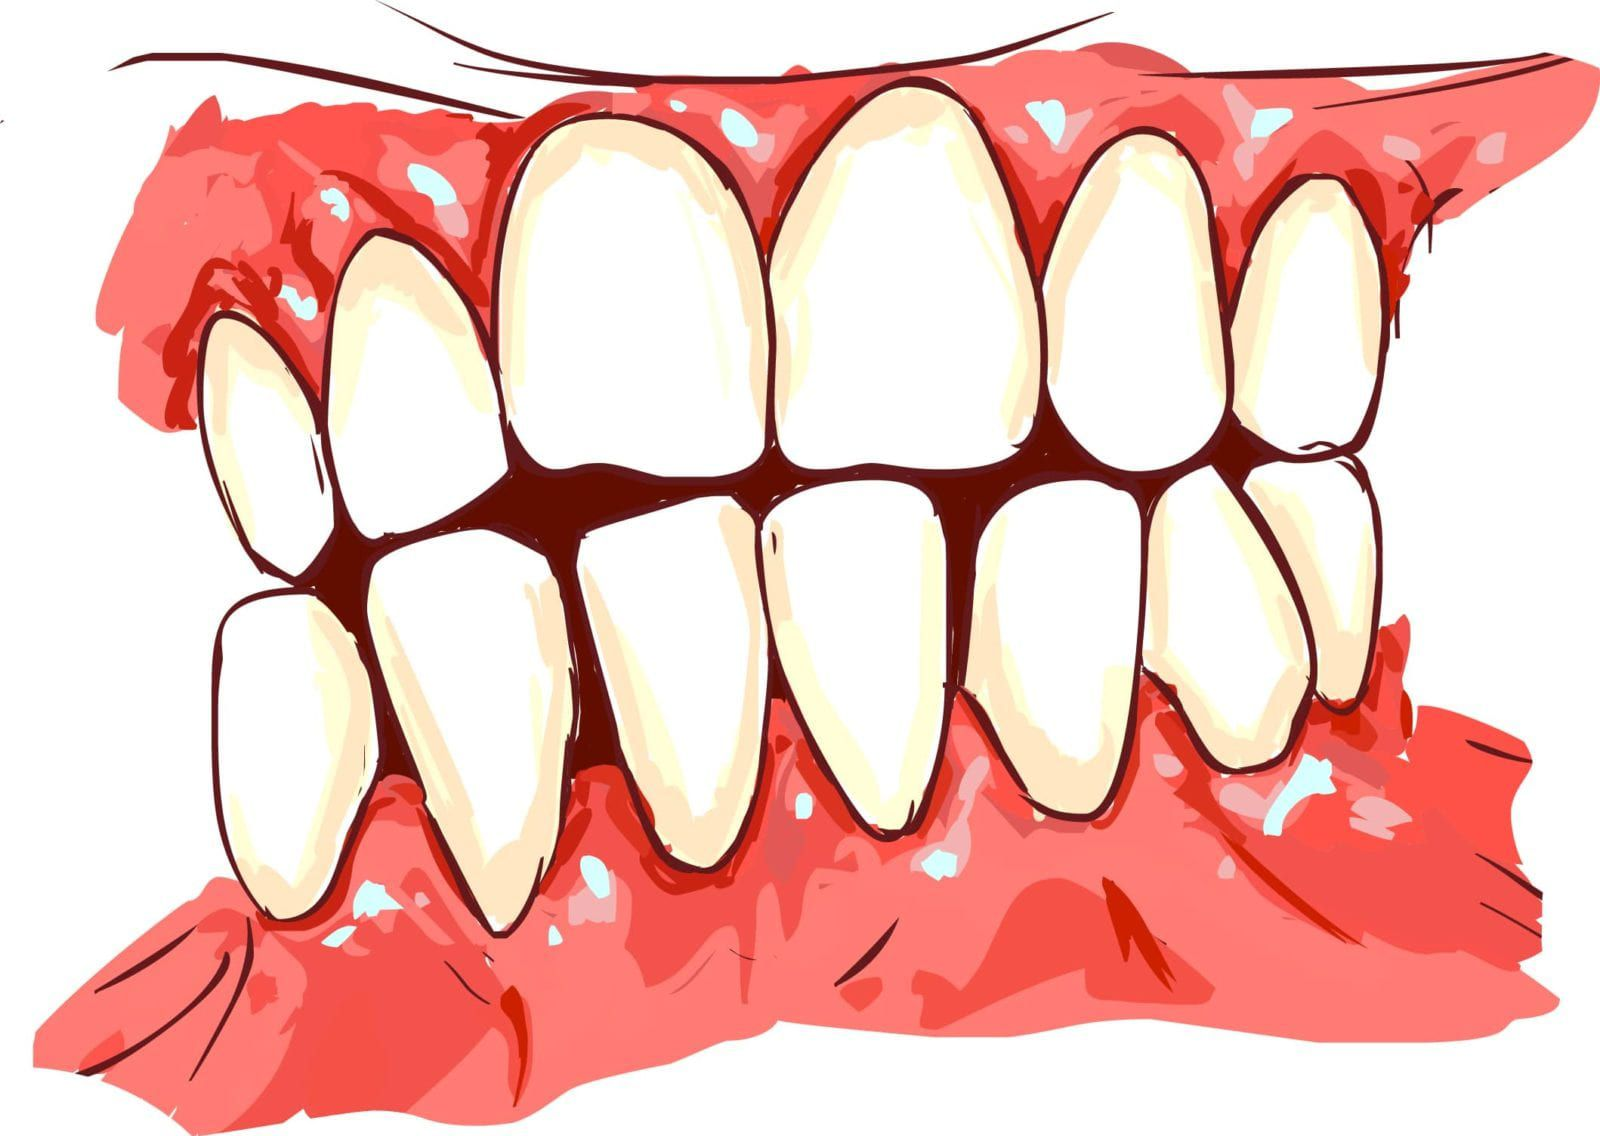 gums that are irritated and have receeded